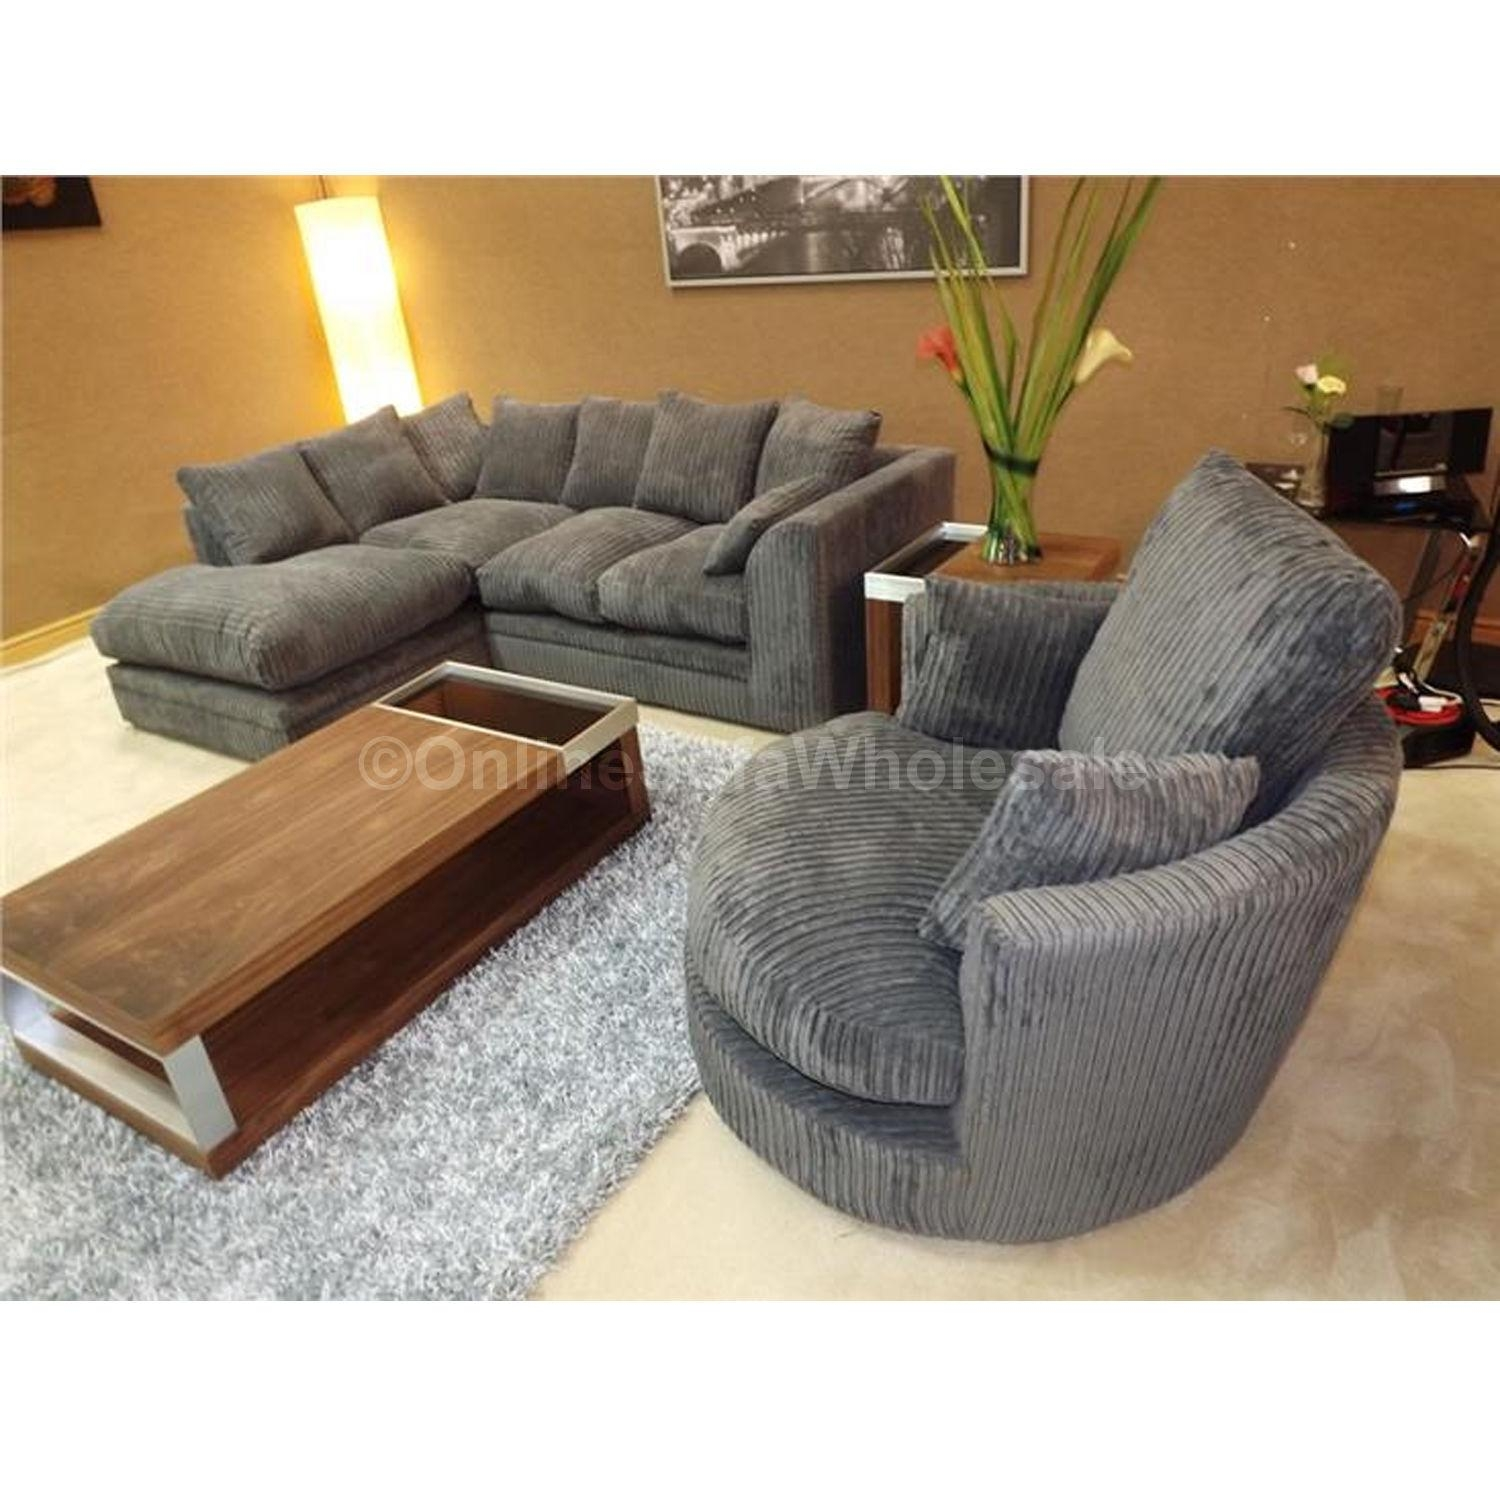 Sofas : Awesome Swivel Sofa Chair Oversized Round Swivel Chair In Chair Sofas (View 18 of 22)